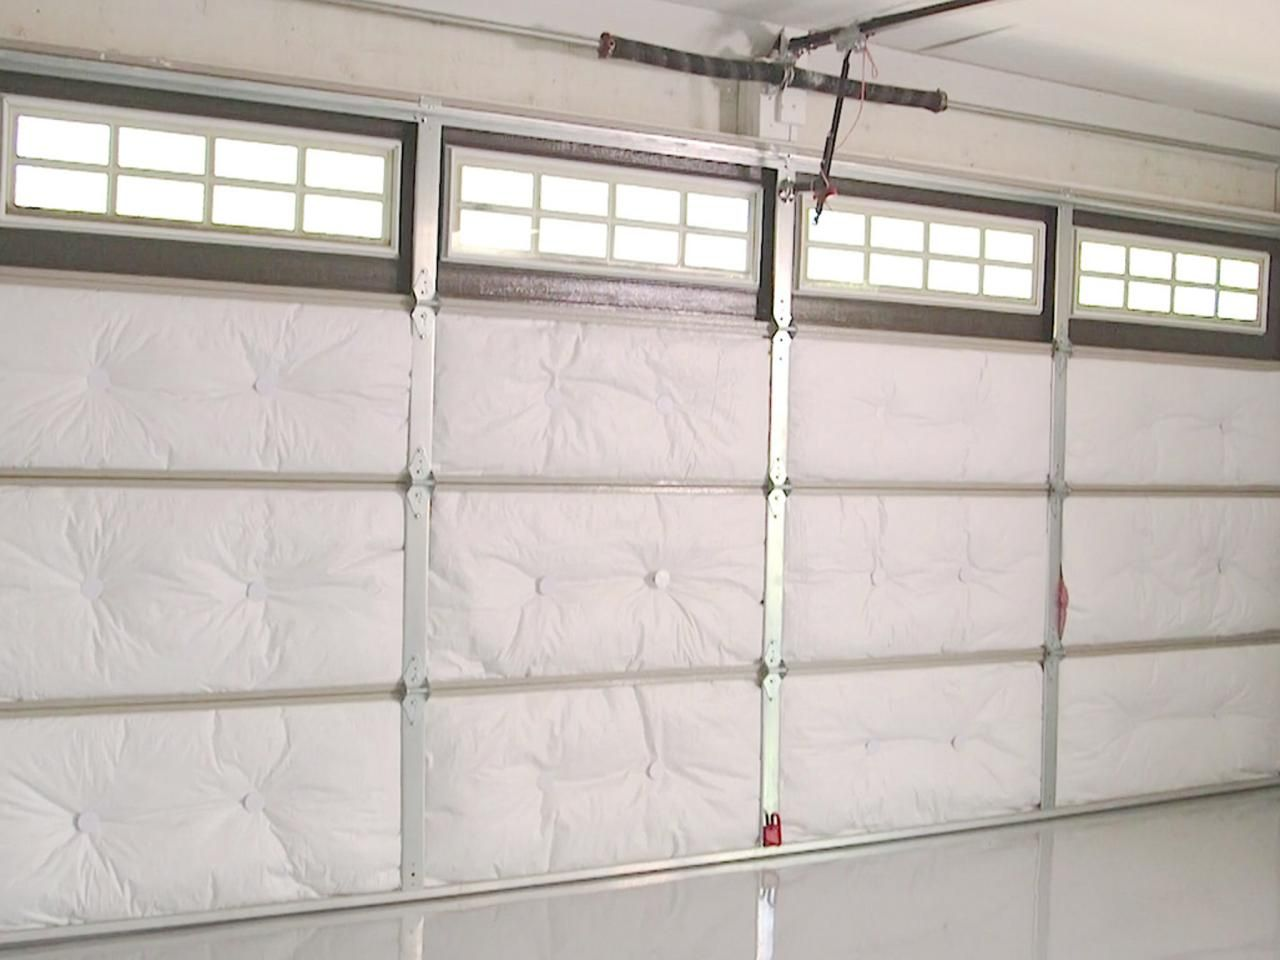 Carriage garage doors without windows  How to Insulate a Garage Door  Garage doors Insulation and Doors